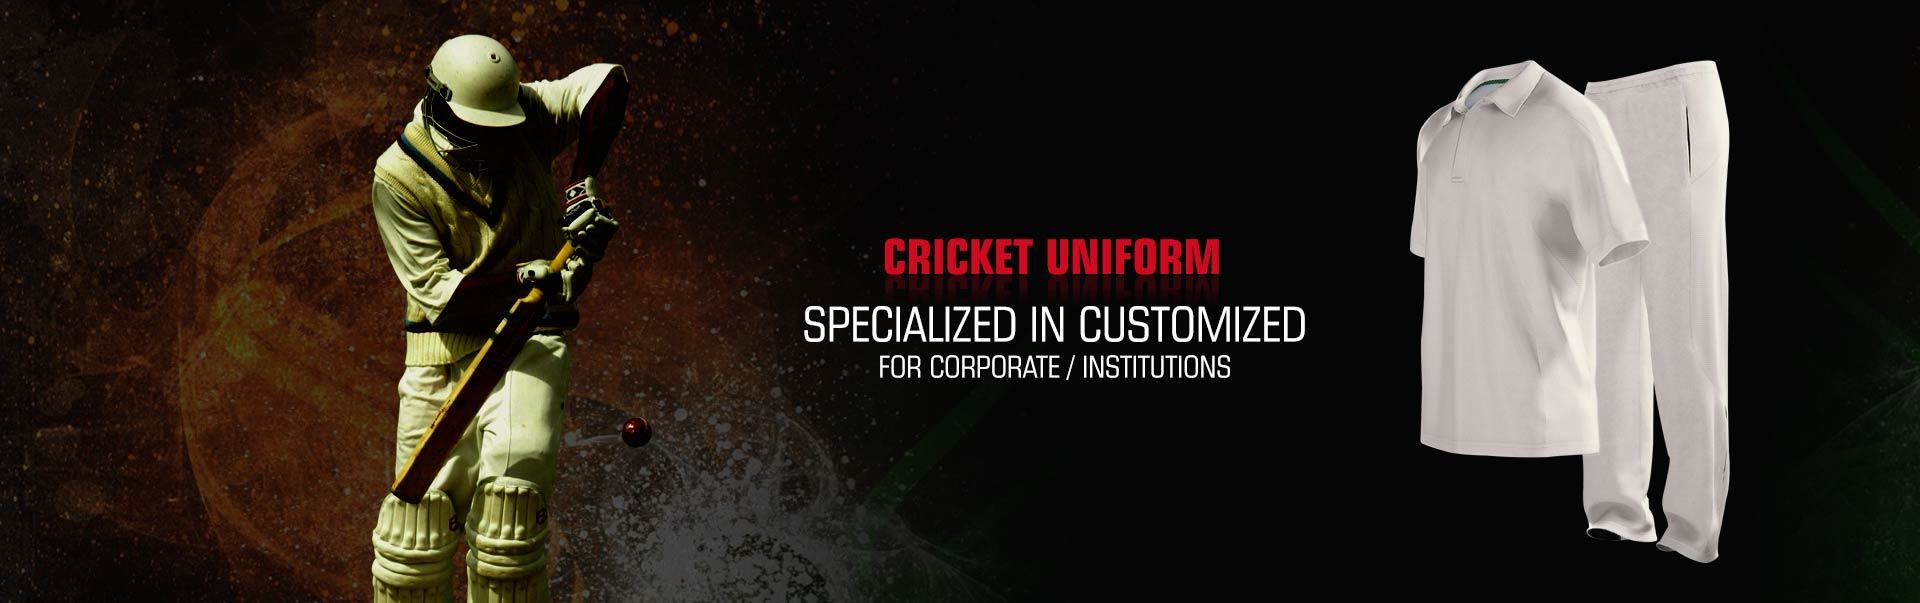 Cricket Uniform Wholesaler, Suppliers in Bellevue